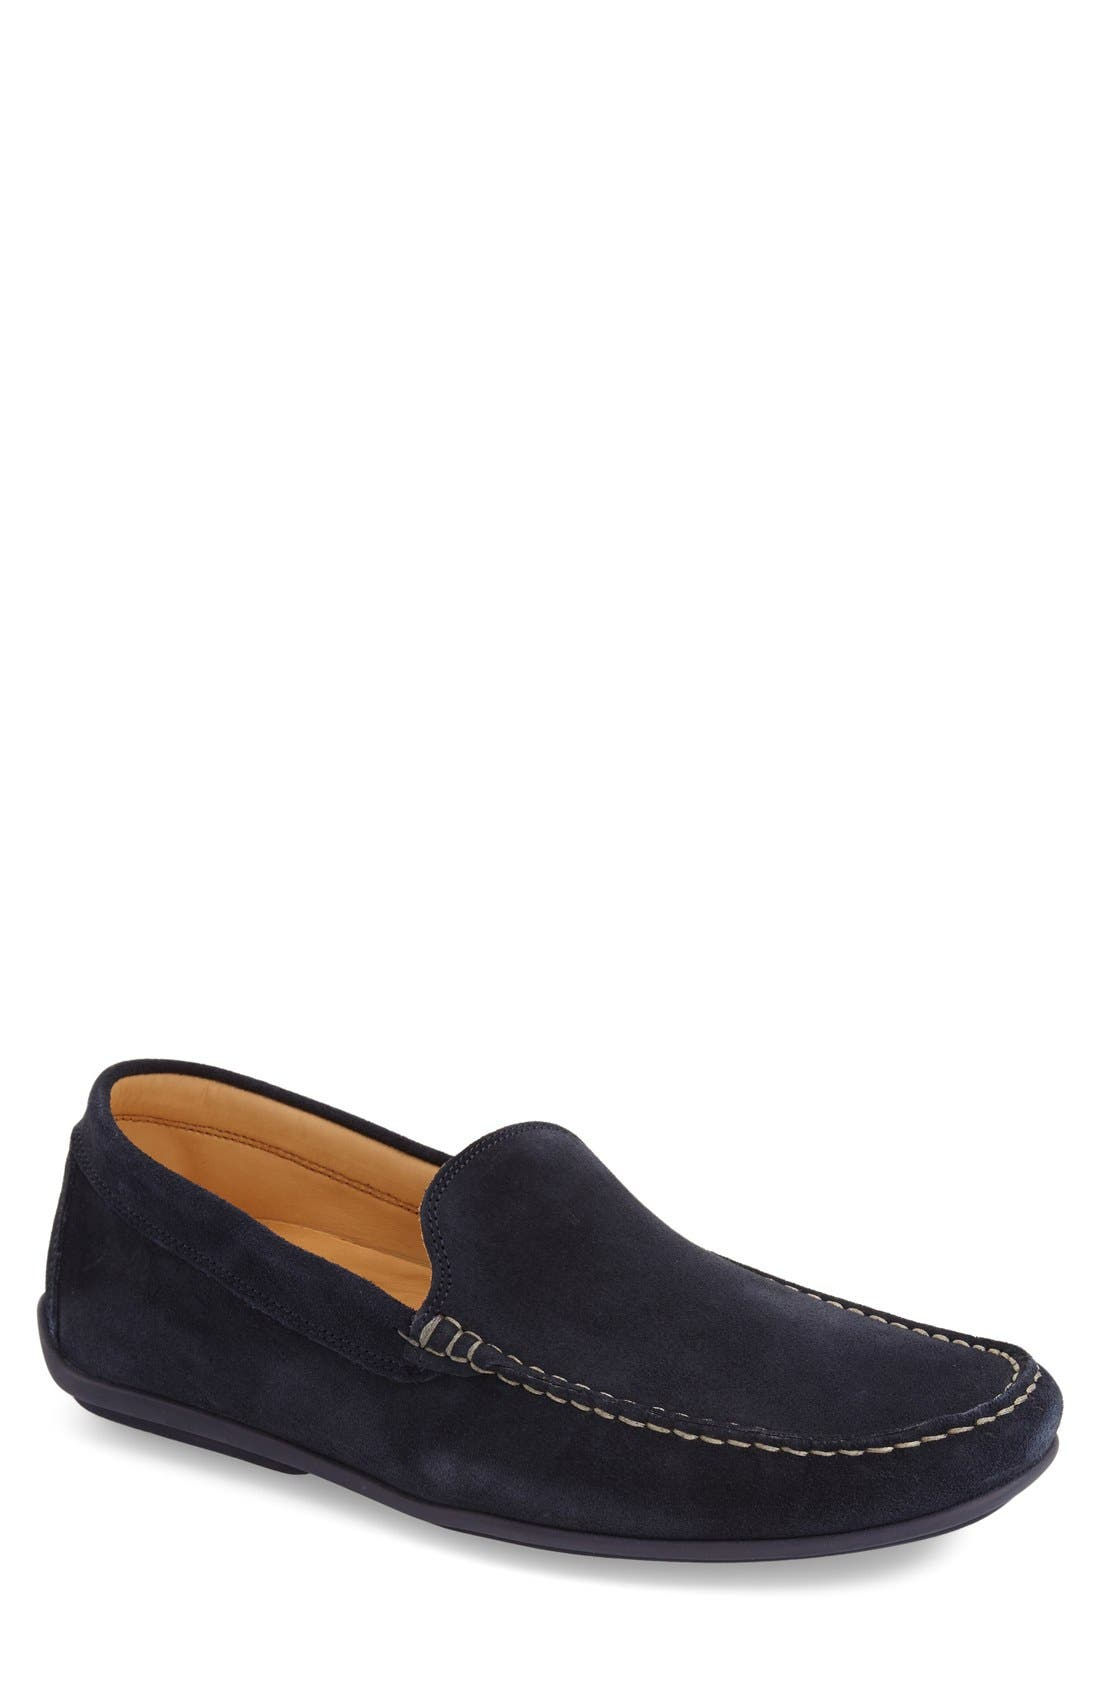 'Meridians' Loafer,                             Main thumbnail 1, color,                             410